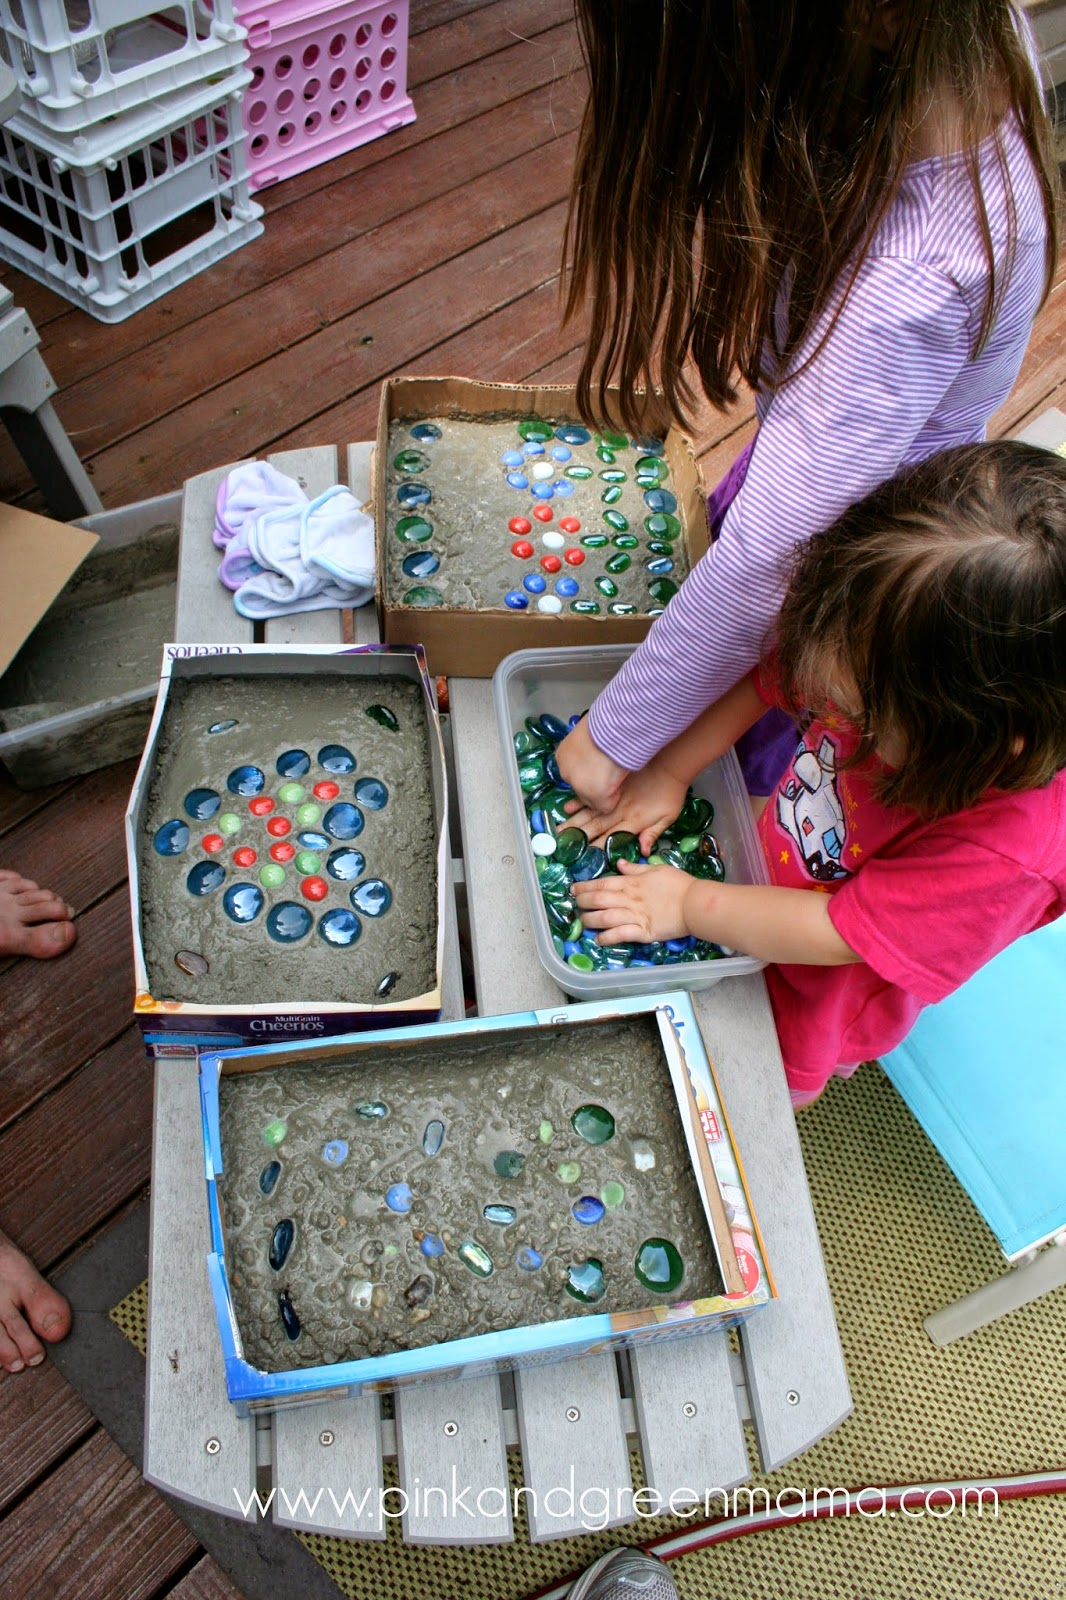 Awesome He Poured It Into The Boxes, Then The Girls Added Glass Stones.